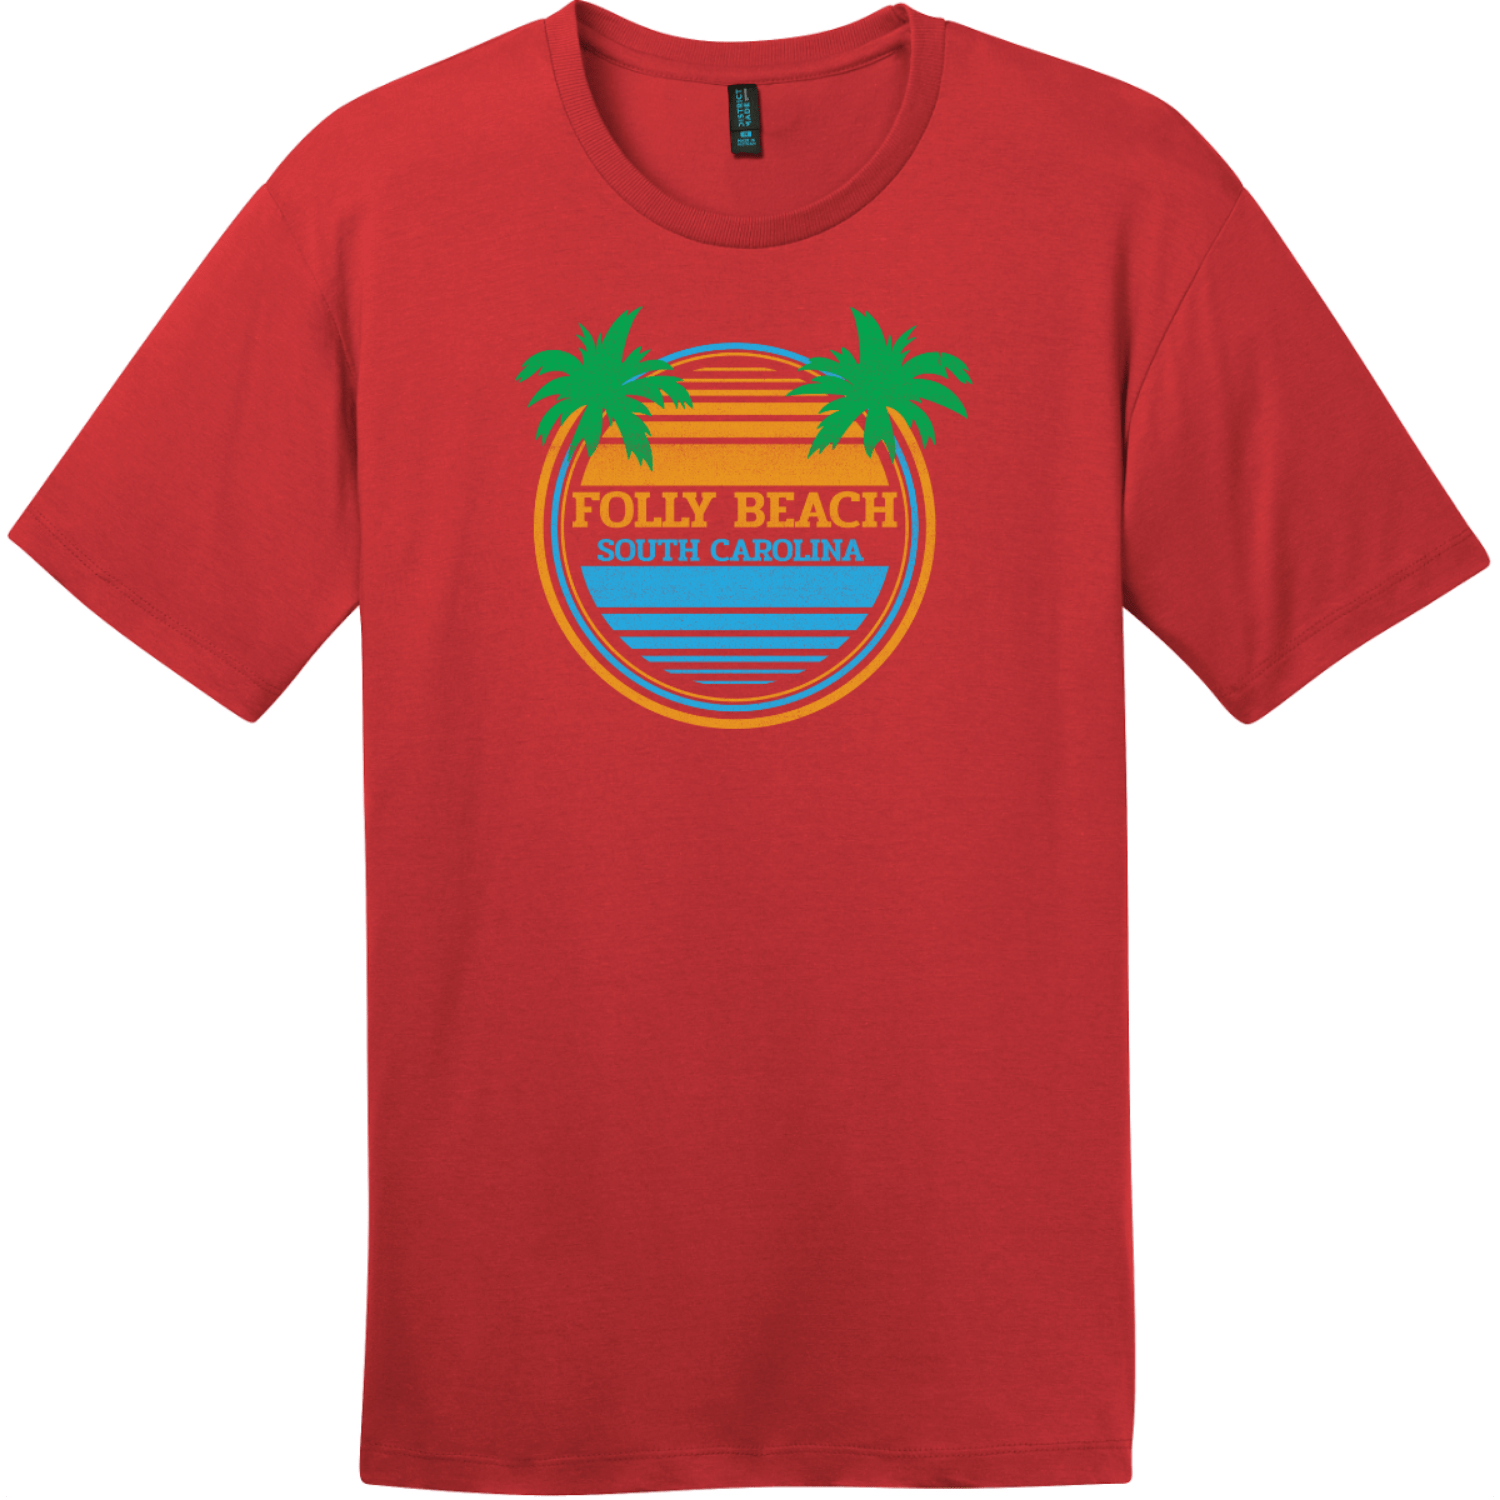 Folly Beach South Carolina Palm Trees T-Shirt Classic Red District Perfect Weight Tee DT104